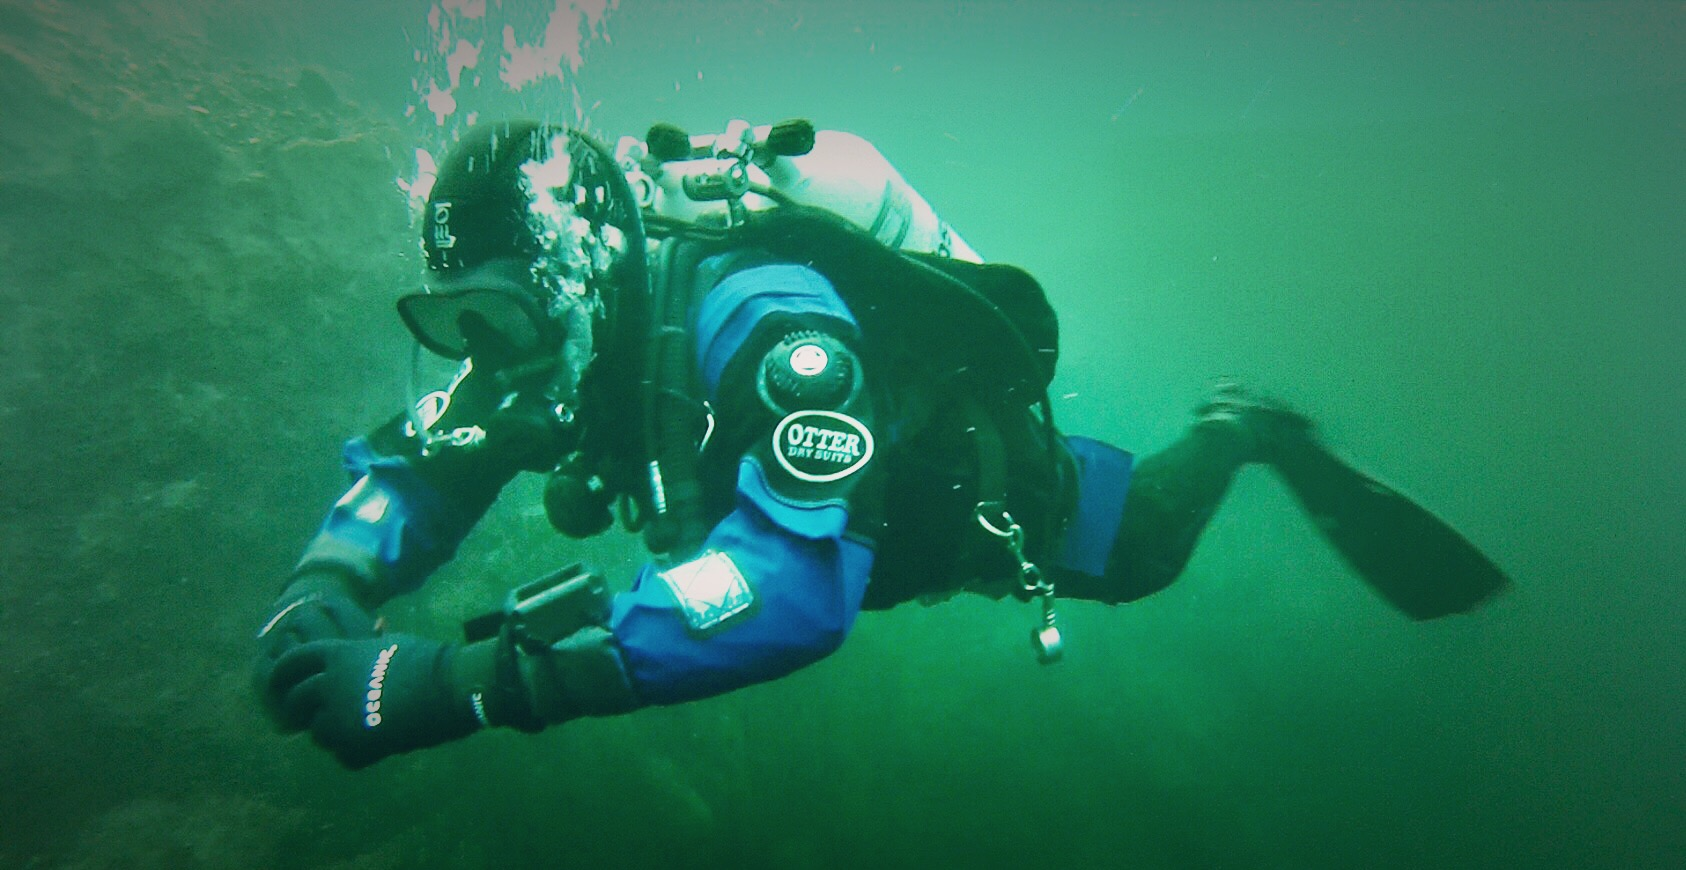 Diving in Vobster Quay, photo taken by Joshua Yates. February 2017